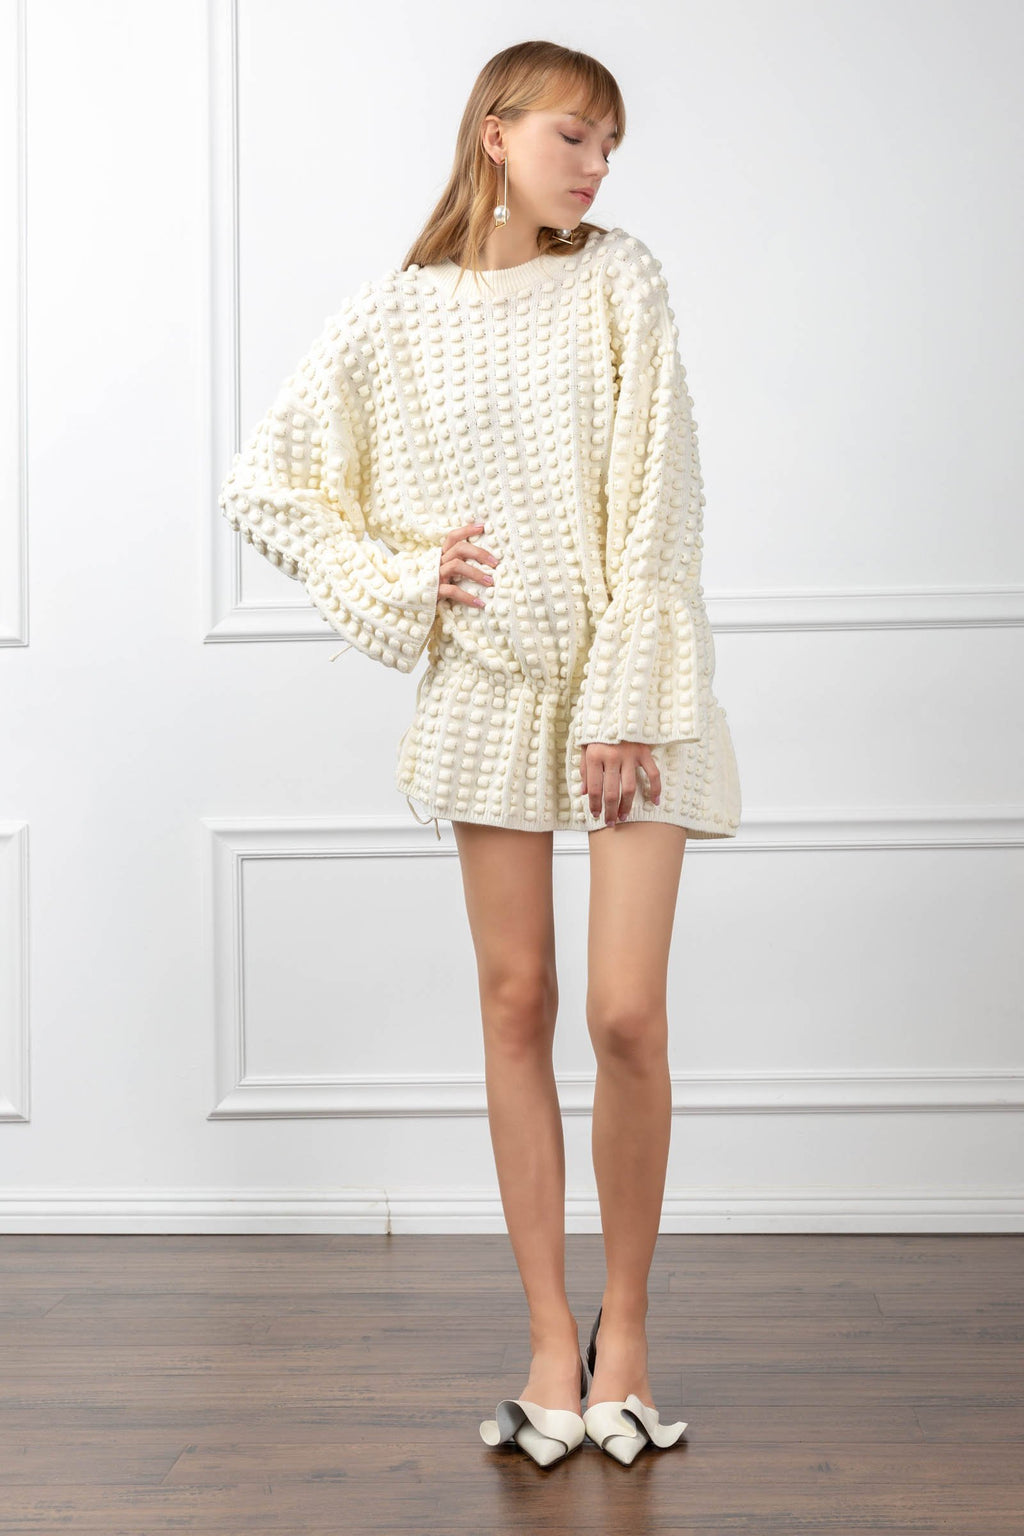 Dawn Sweater in Knitwear by J.ING - an L.A based women's fashion line